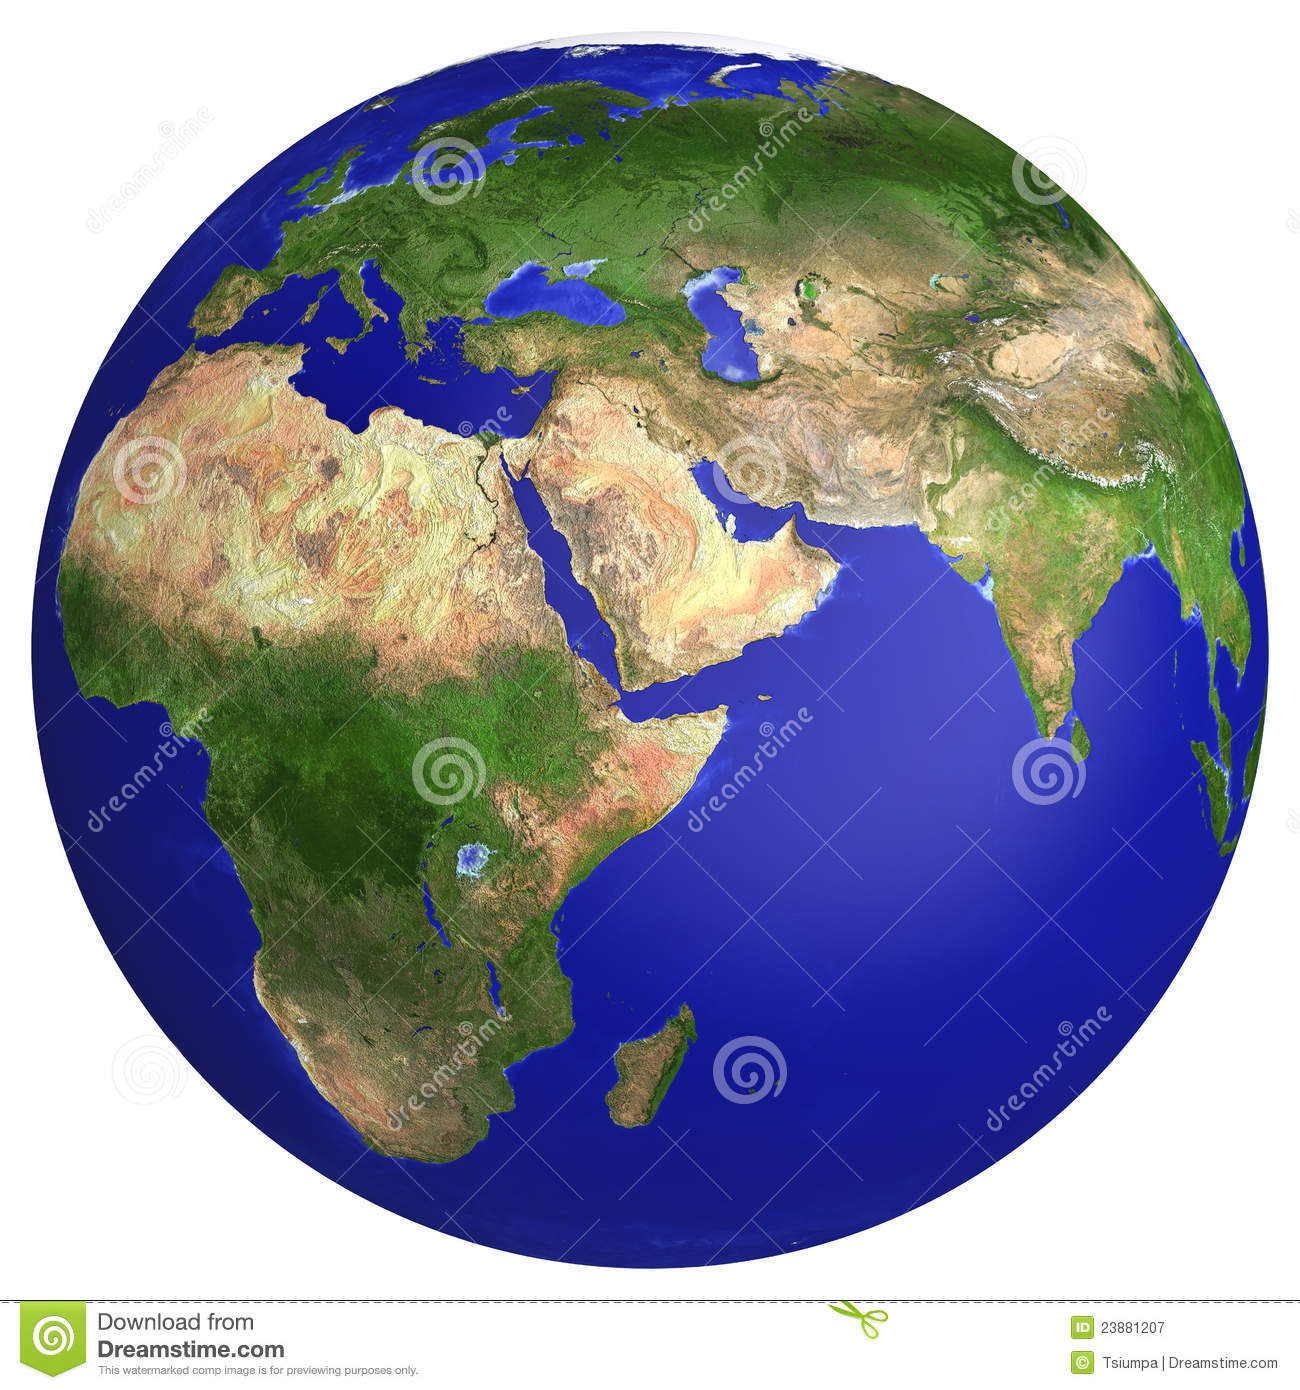 Earth Planet Globe Map Royalty Free Photography Image – Globe Maps of the Earth